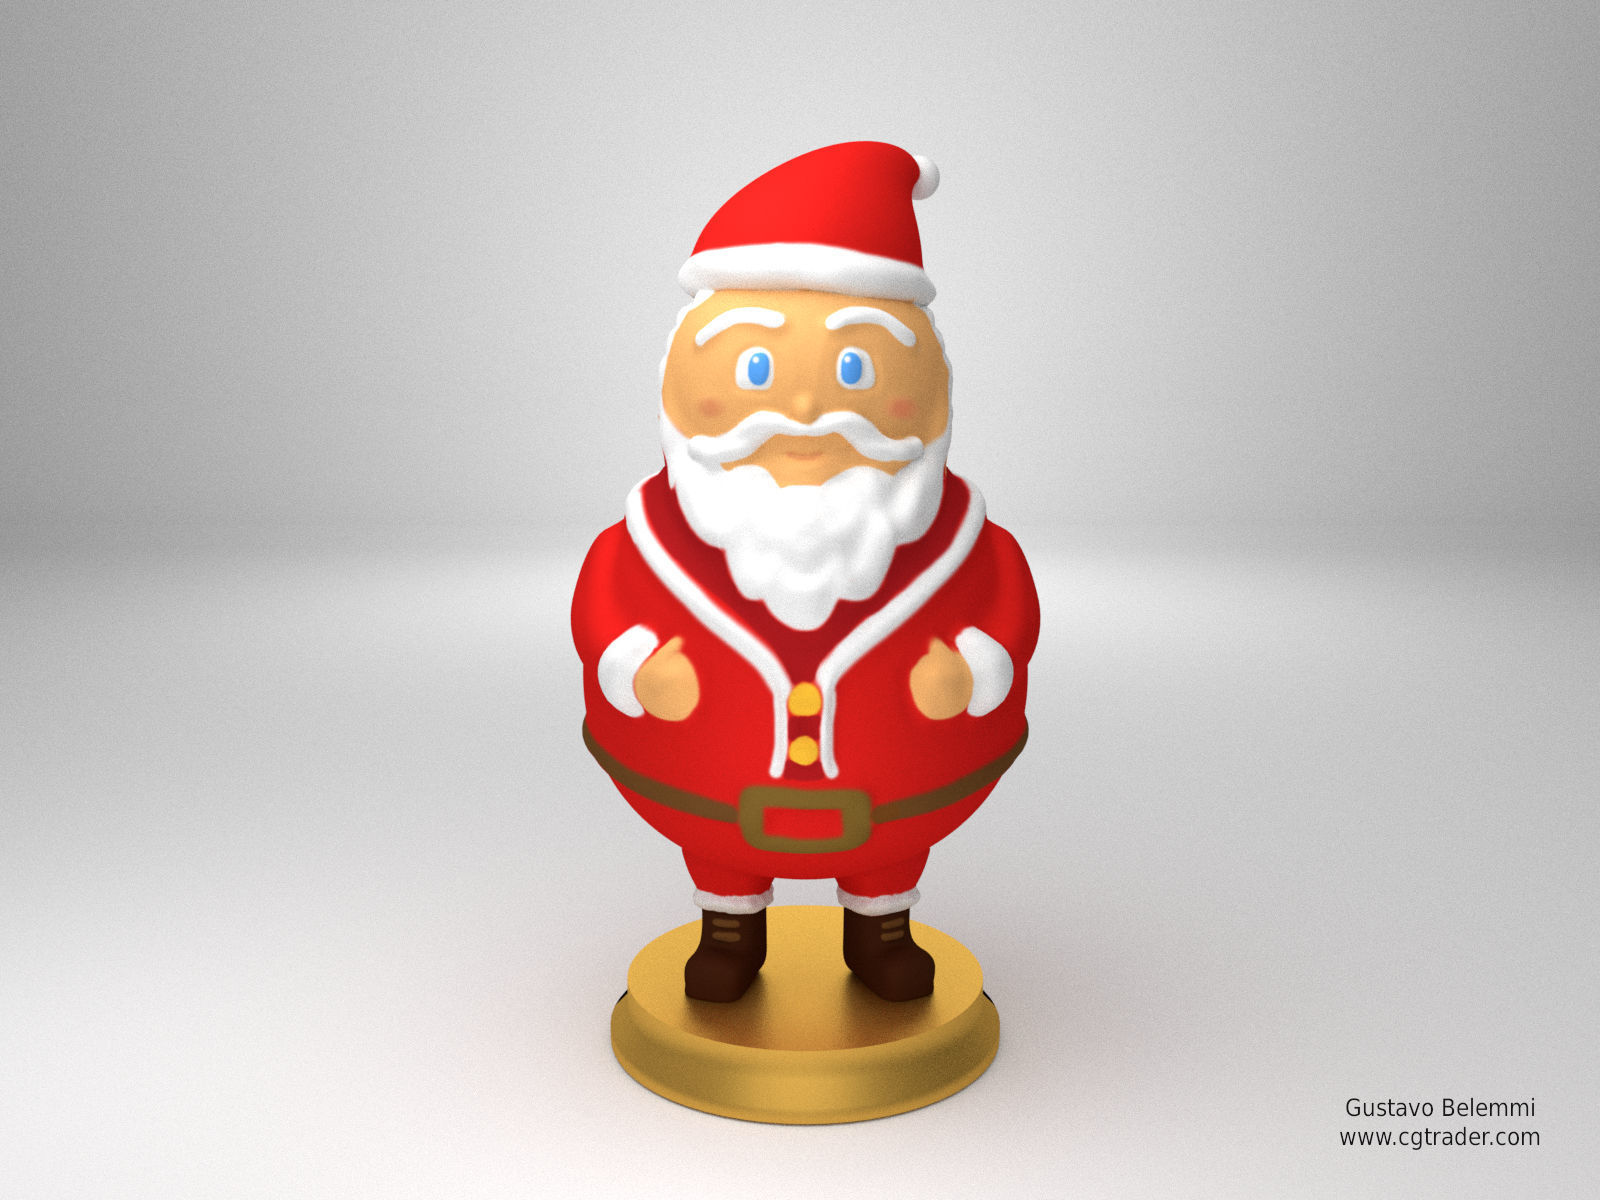 graphic regarding Santa Claus Printable Pictures referred to as Sculpture of Santa Claus 3D Print Fashion